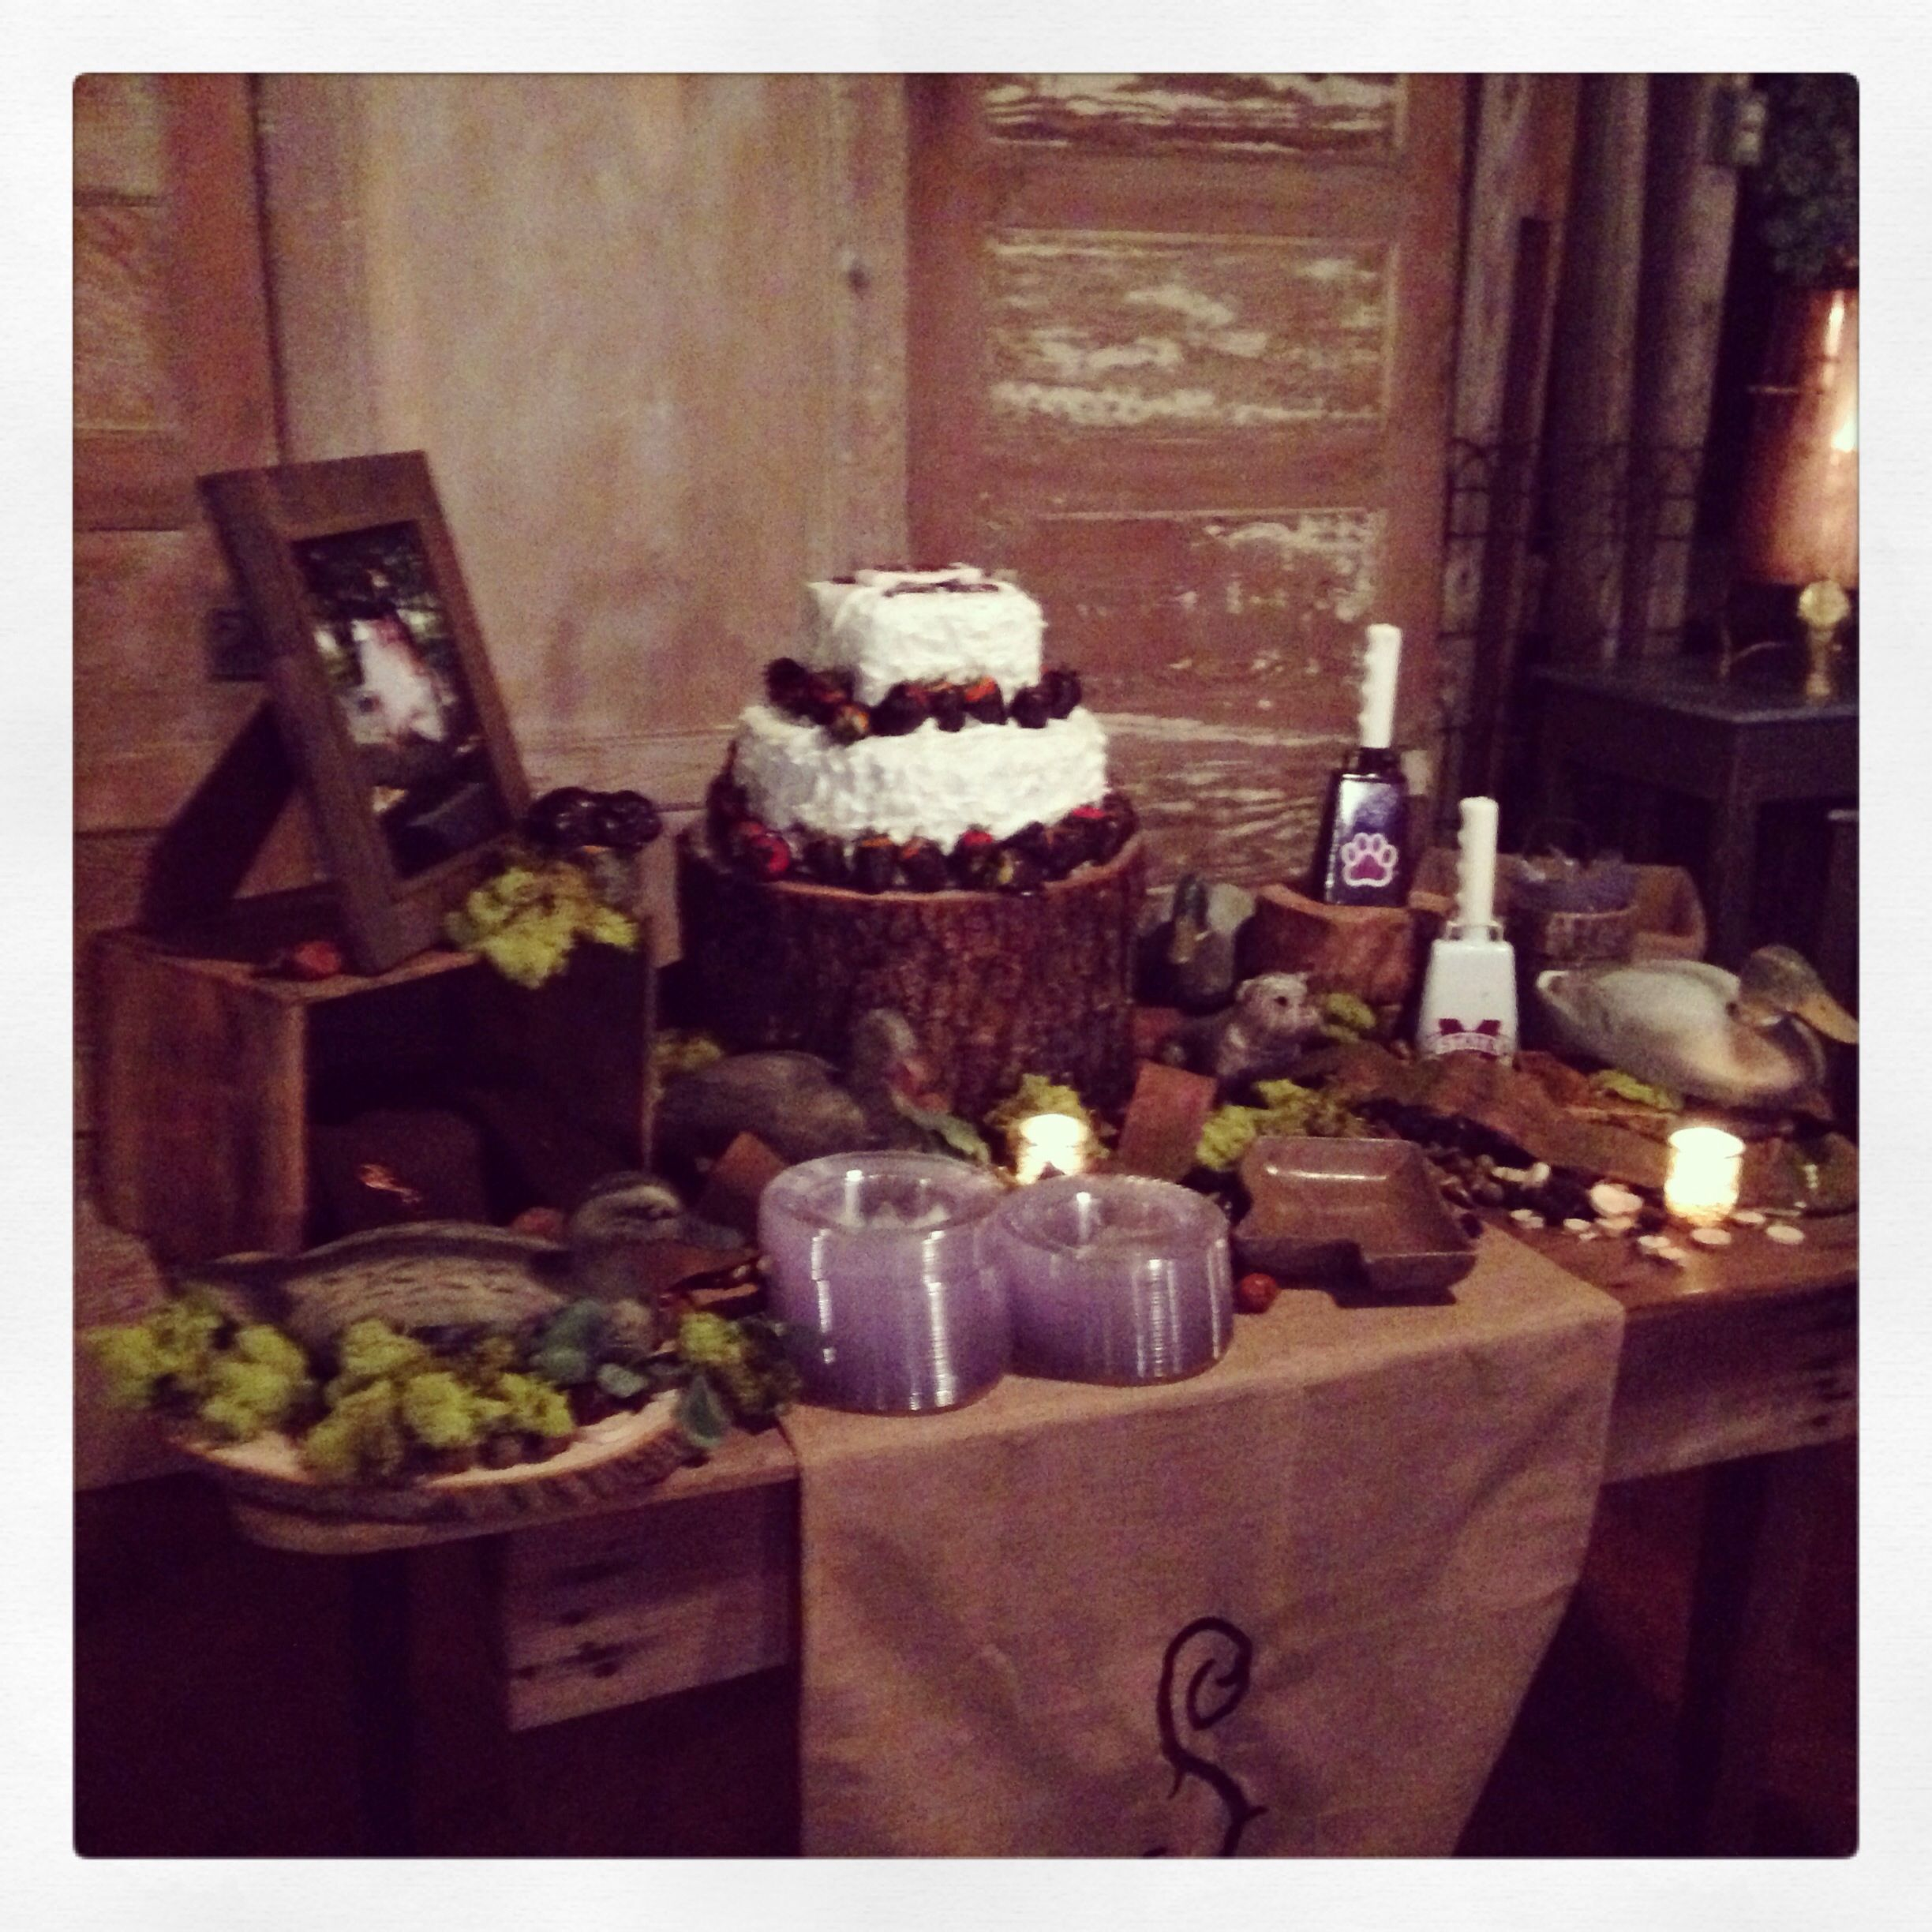 Drew S Cake Table Msu Hunting And Rustic Themed With Peter S